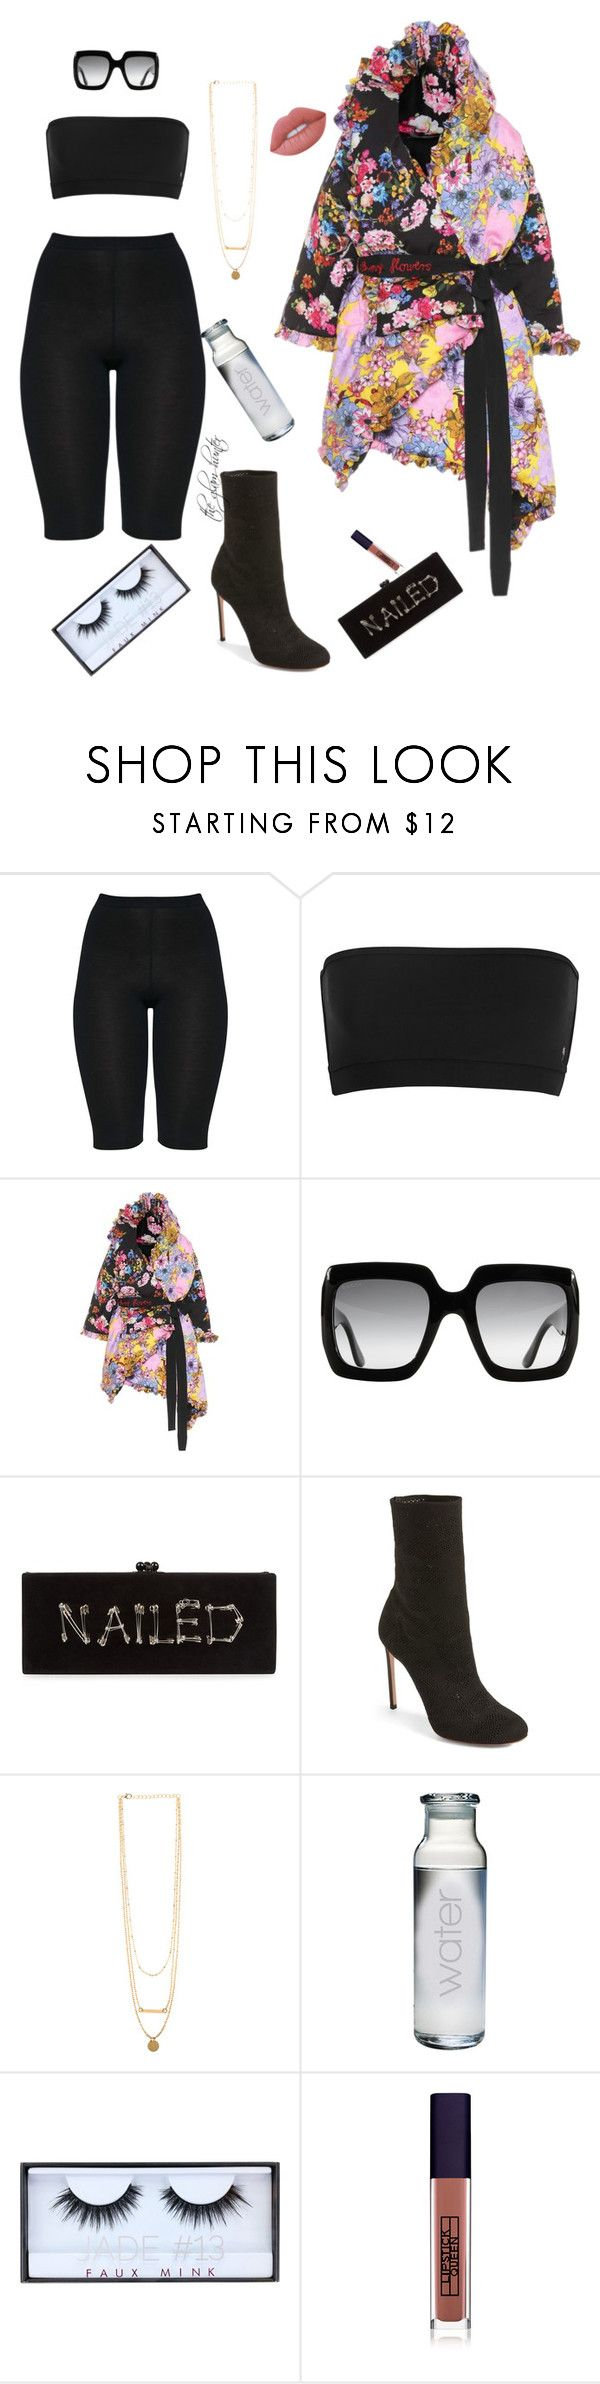 """""""Hurry Up"""" by theglamhunter on Polyvore featuring Preen, Gucci, Edie Parker, Francesco Russo, Susquehanna Glass, Huda Beauty, Lipstick Queen and Lime Crime"""